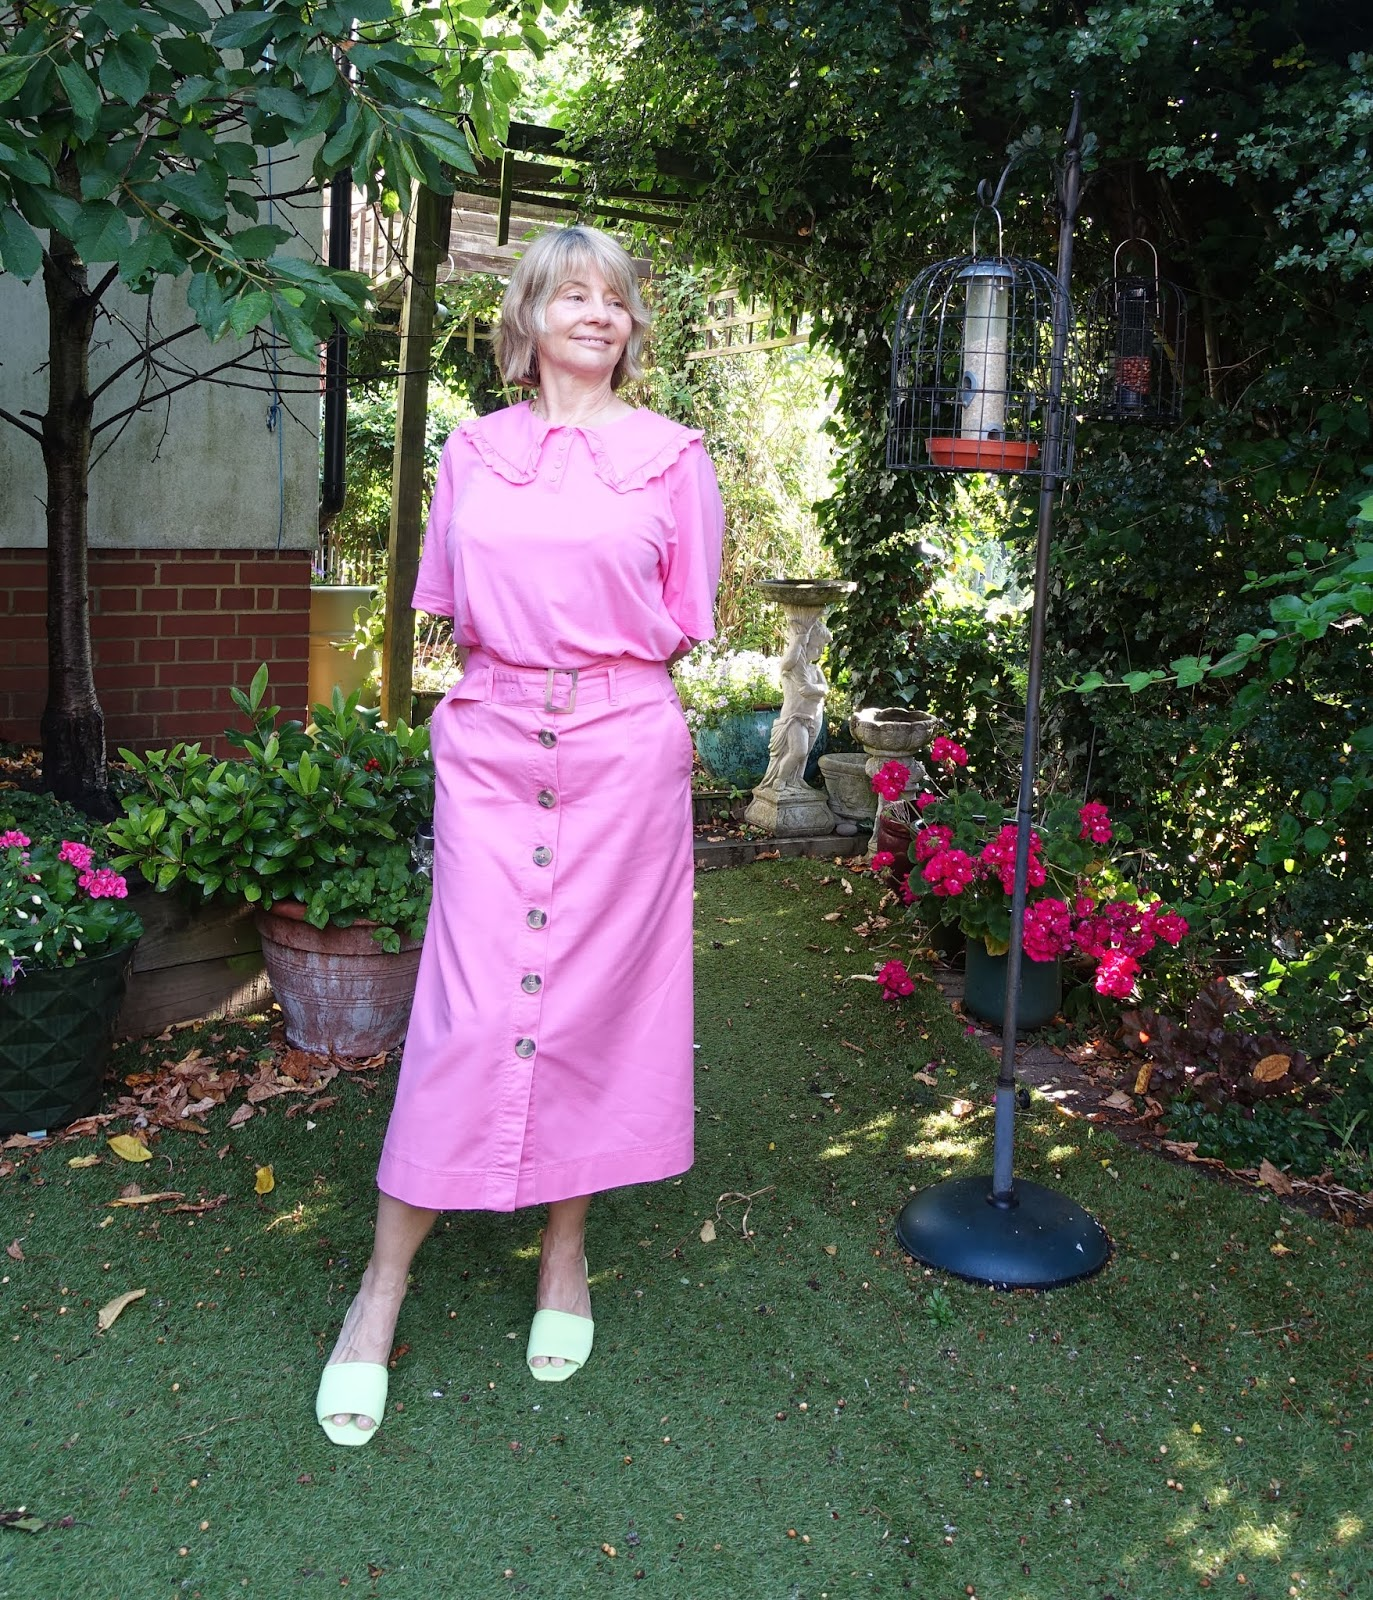 A chic look for the over-50s with a waist defining A line skirt and statement collar top, both in pink which flatters the complexion, and lime green mules for a pop of color. As worn by Is This Mutton blogger Gail Hanlon